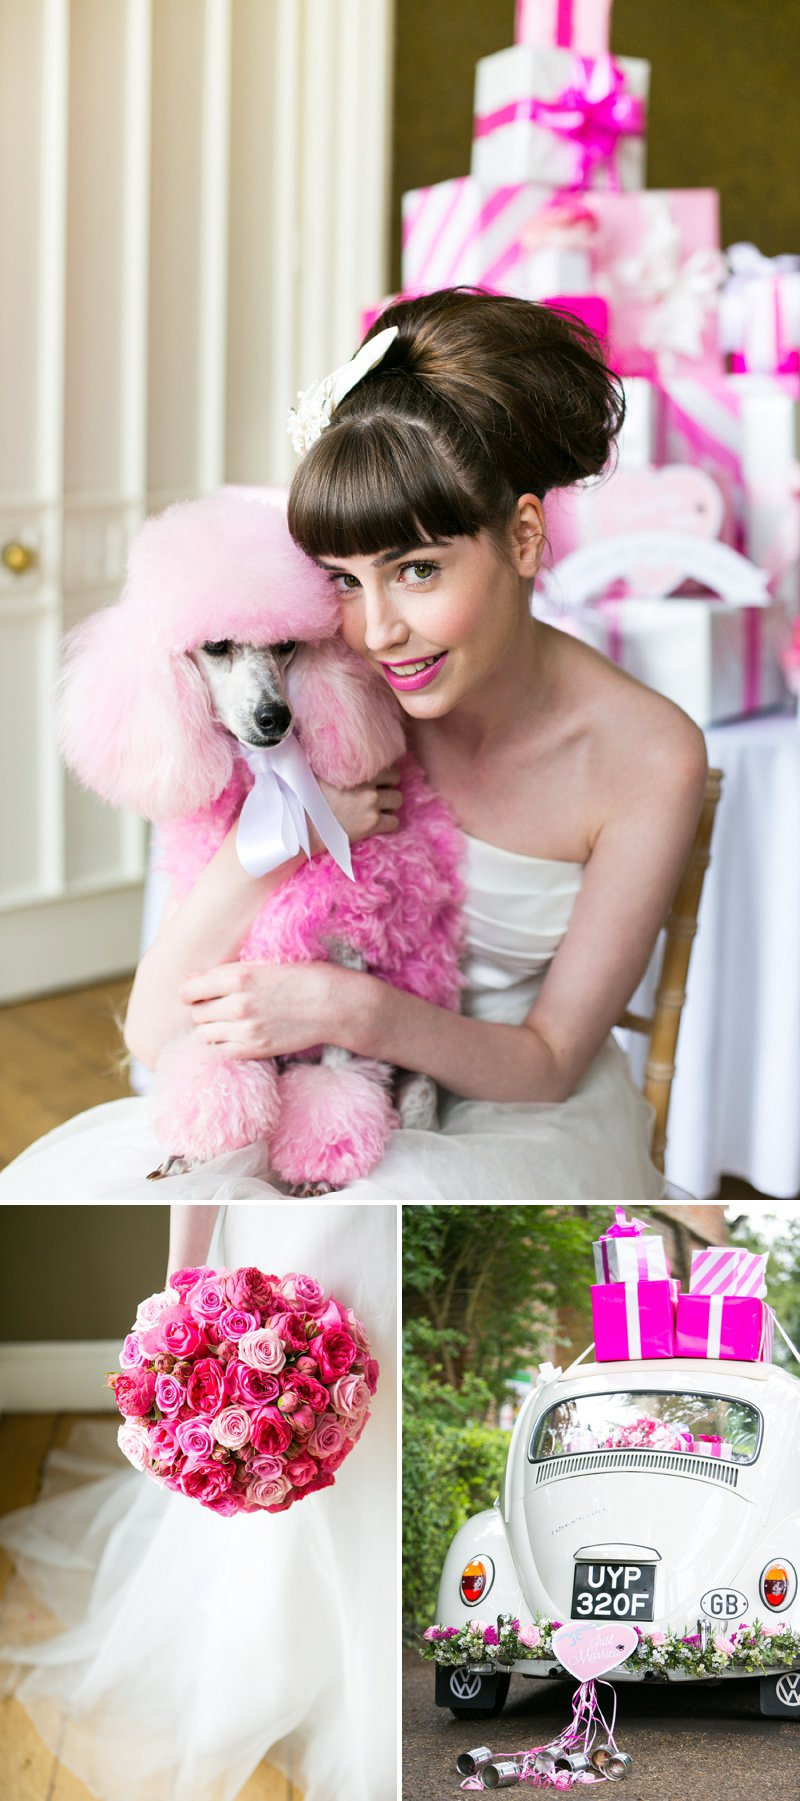 Fun Girly Bridal Inspiration Shoot At Nonsuch Mansion Inspired By Holly Golightly With Bright Pink Details A Vintage Wedding Car With Images by Anneli Marinovich Photography 1